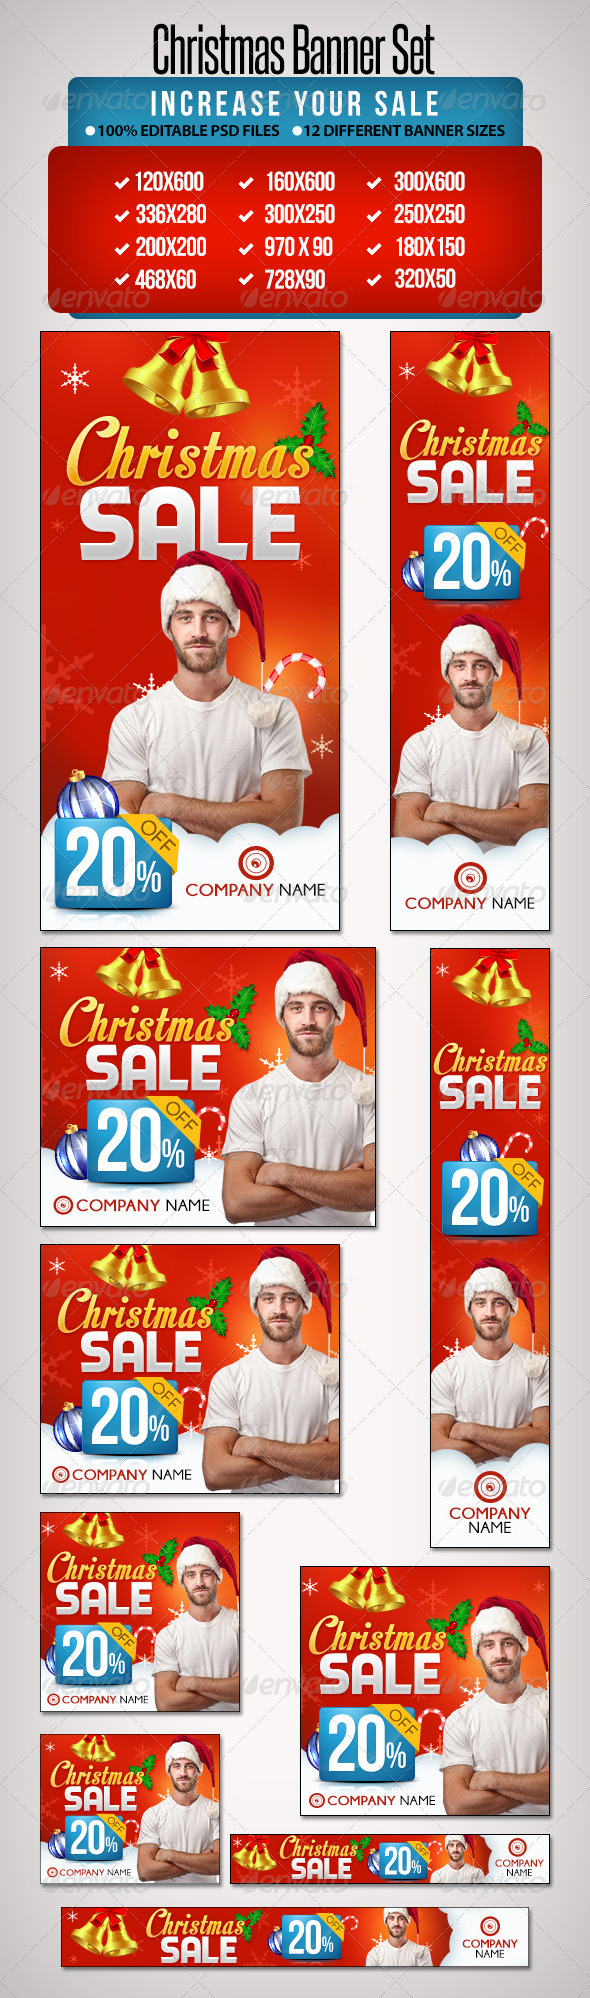 GraphicRiver Christmas Banner Set 4 12 Sizes 6398319